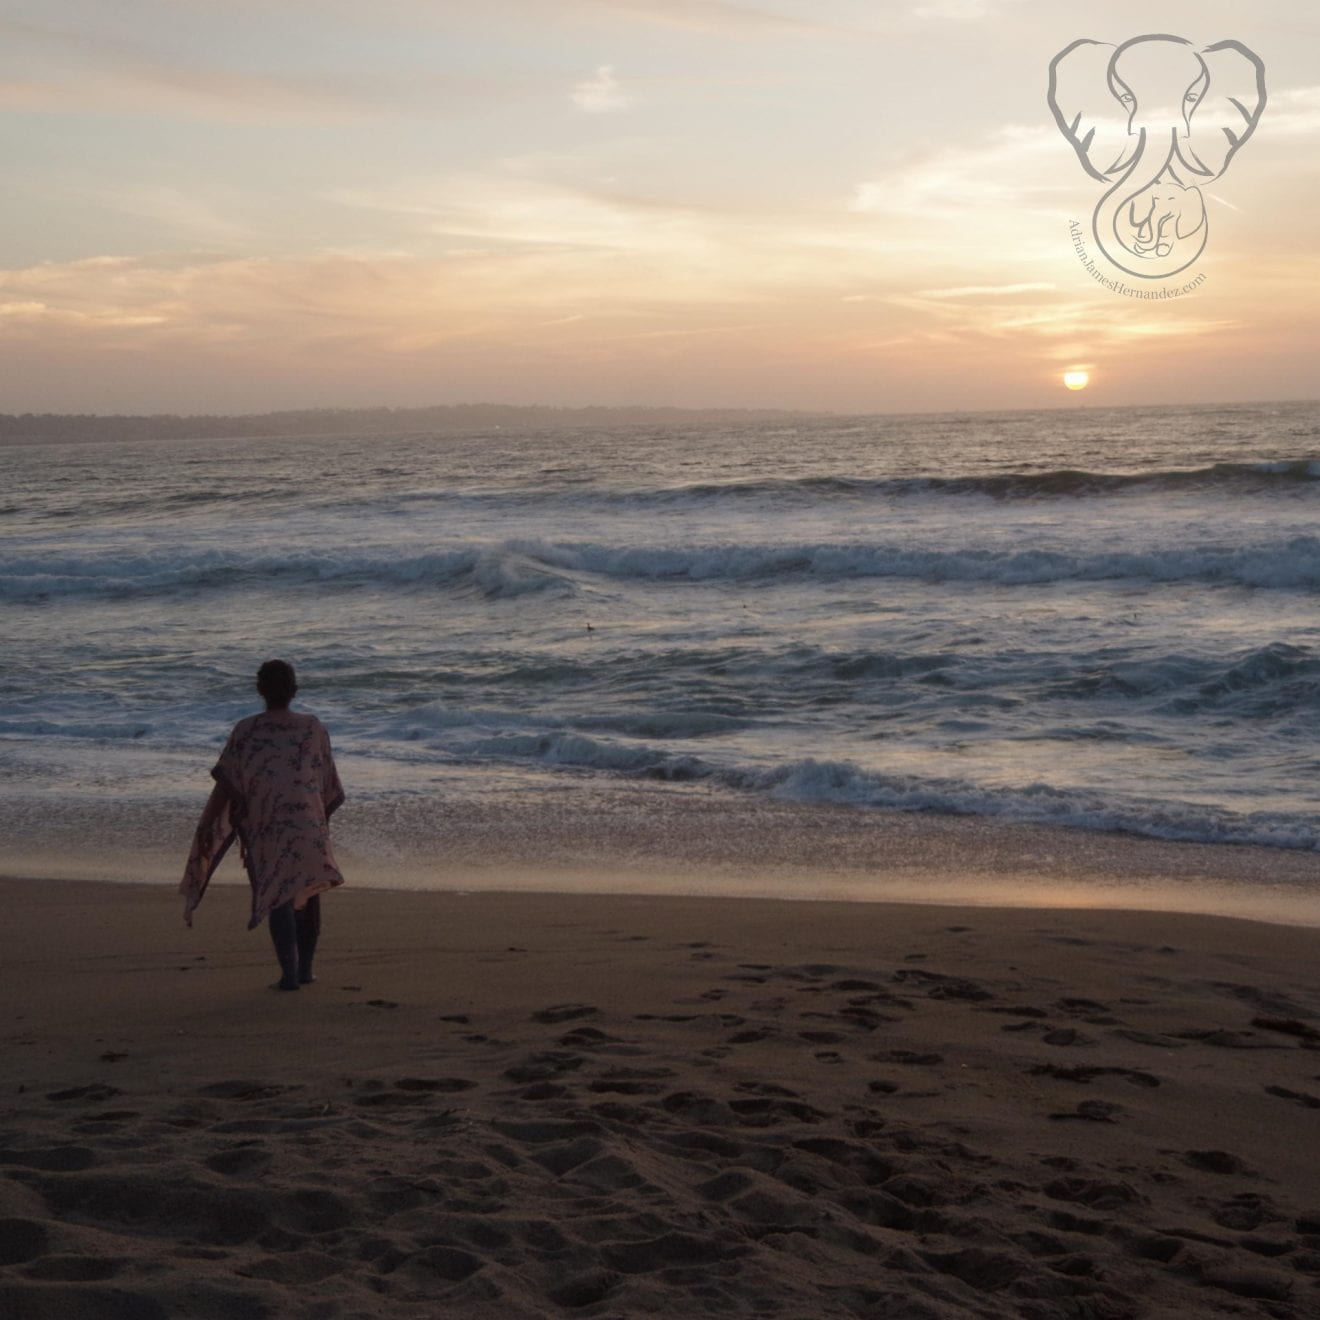 Wide angle view of Miranda standing on a deserted beach in California at sunset. She is wearing a pink kimono fluttering in the breeze (Synch Media)